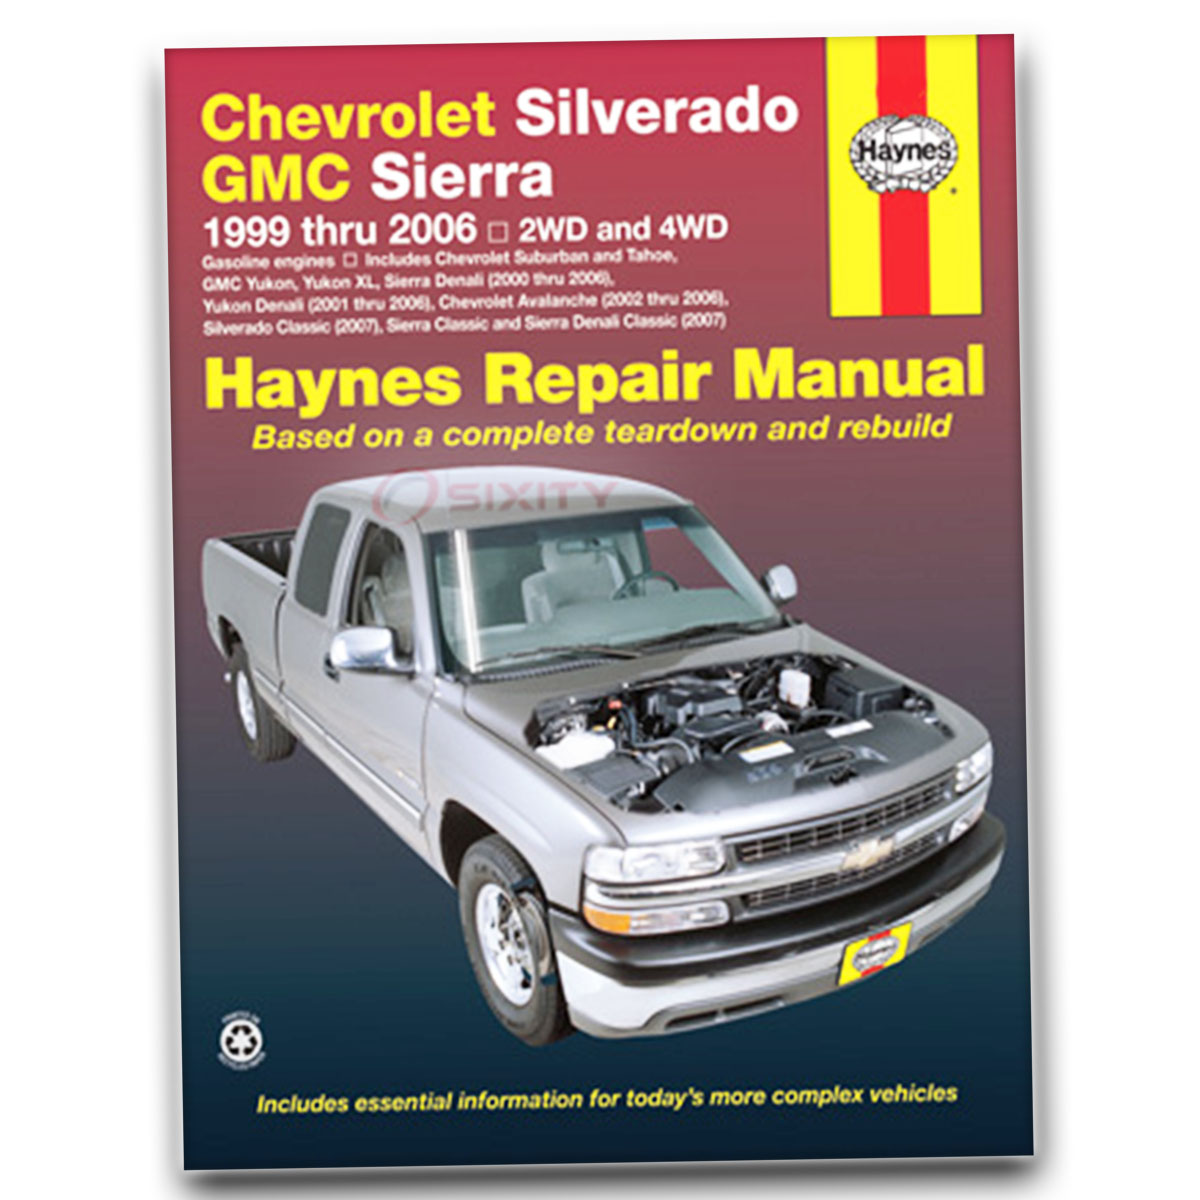 hight resolution of haynes repair manual for chevy silverado 1500 hd lt base ls shop service lb